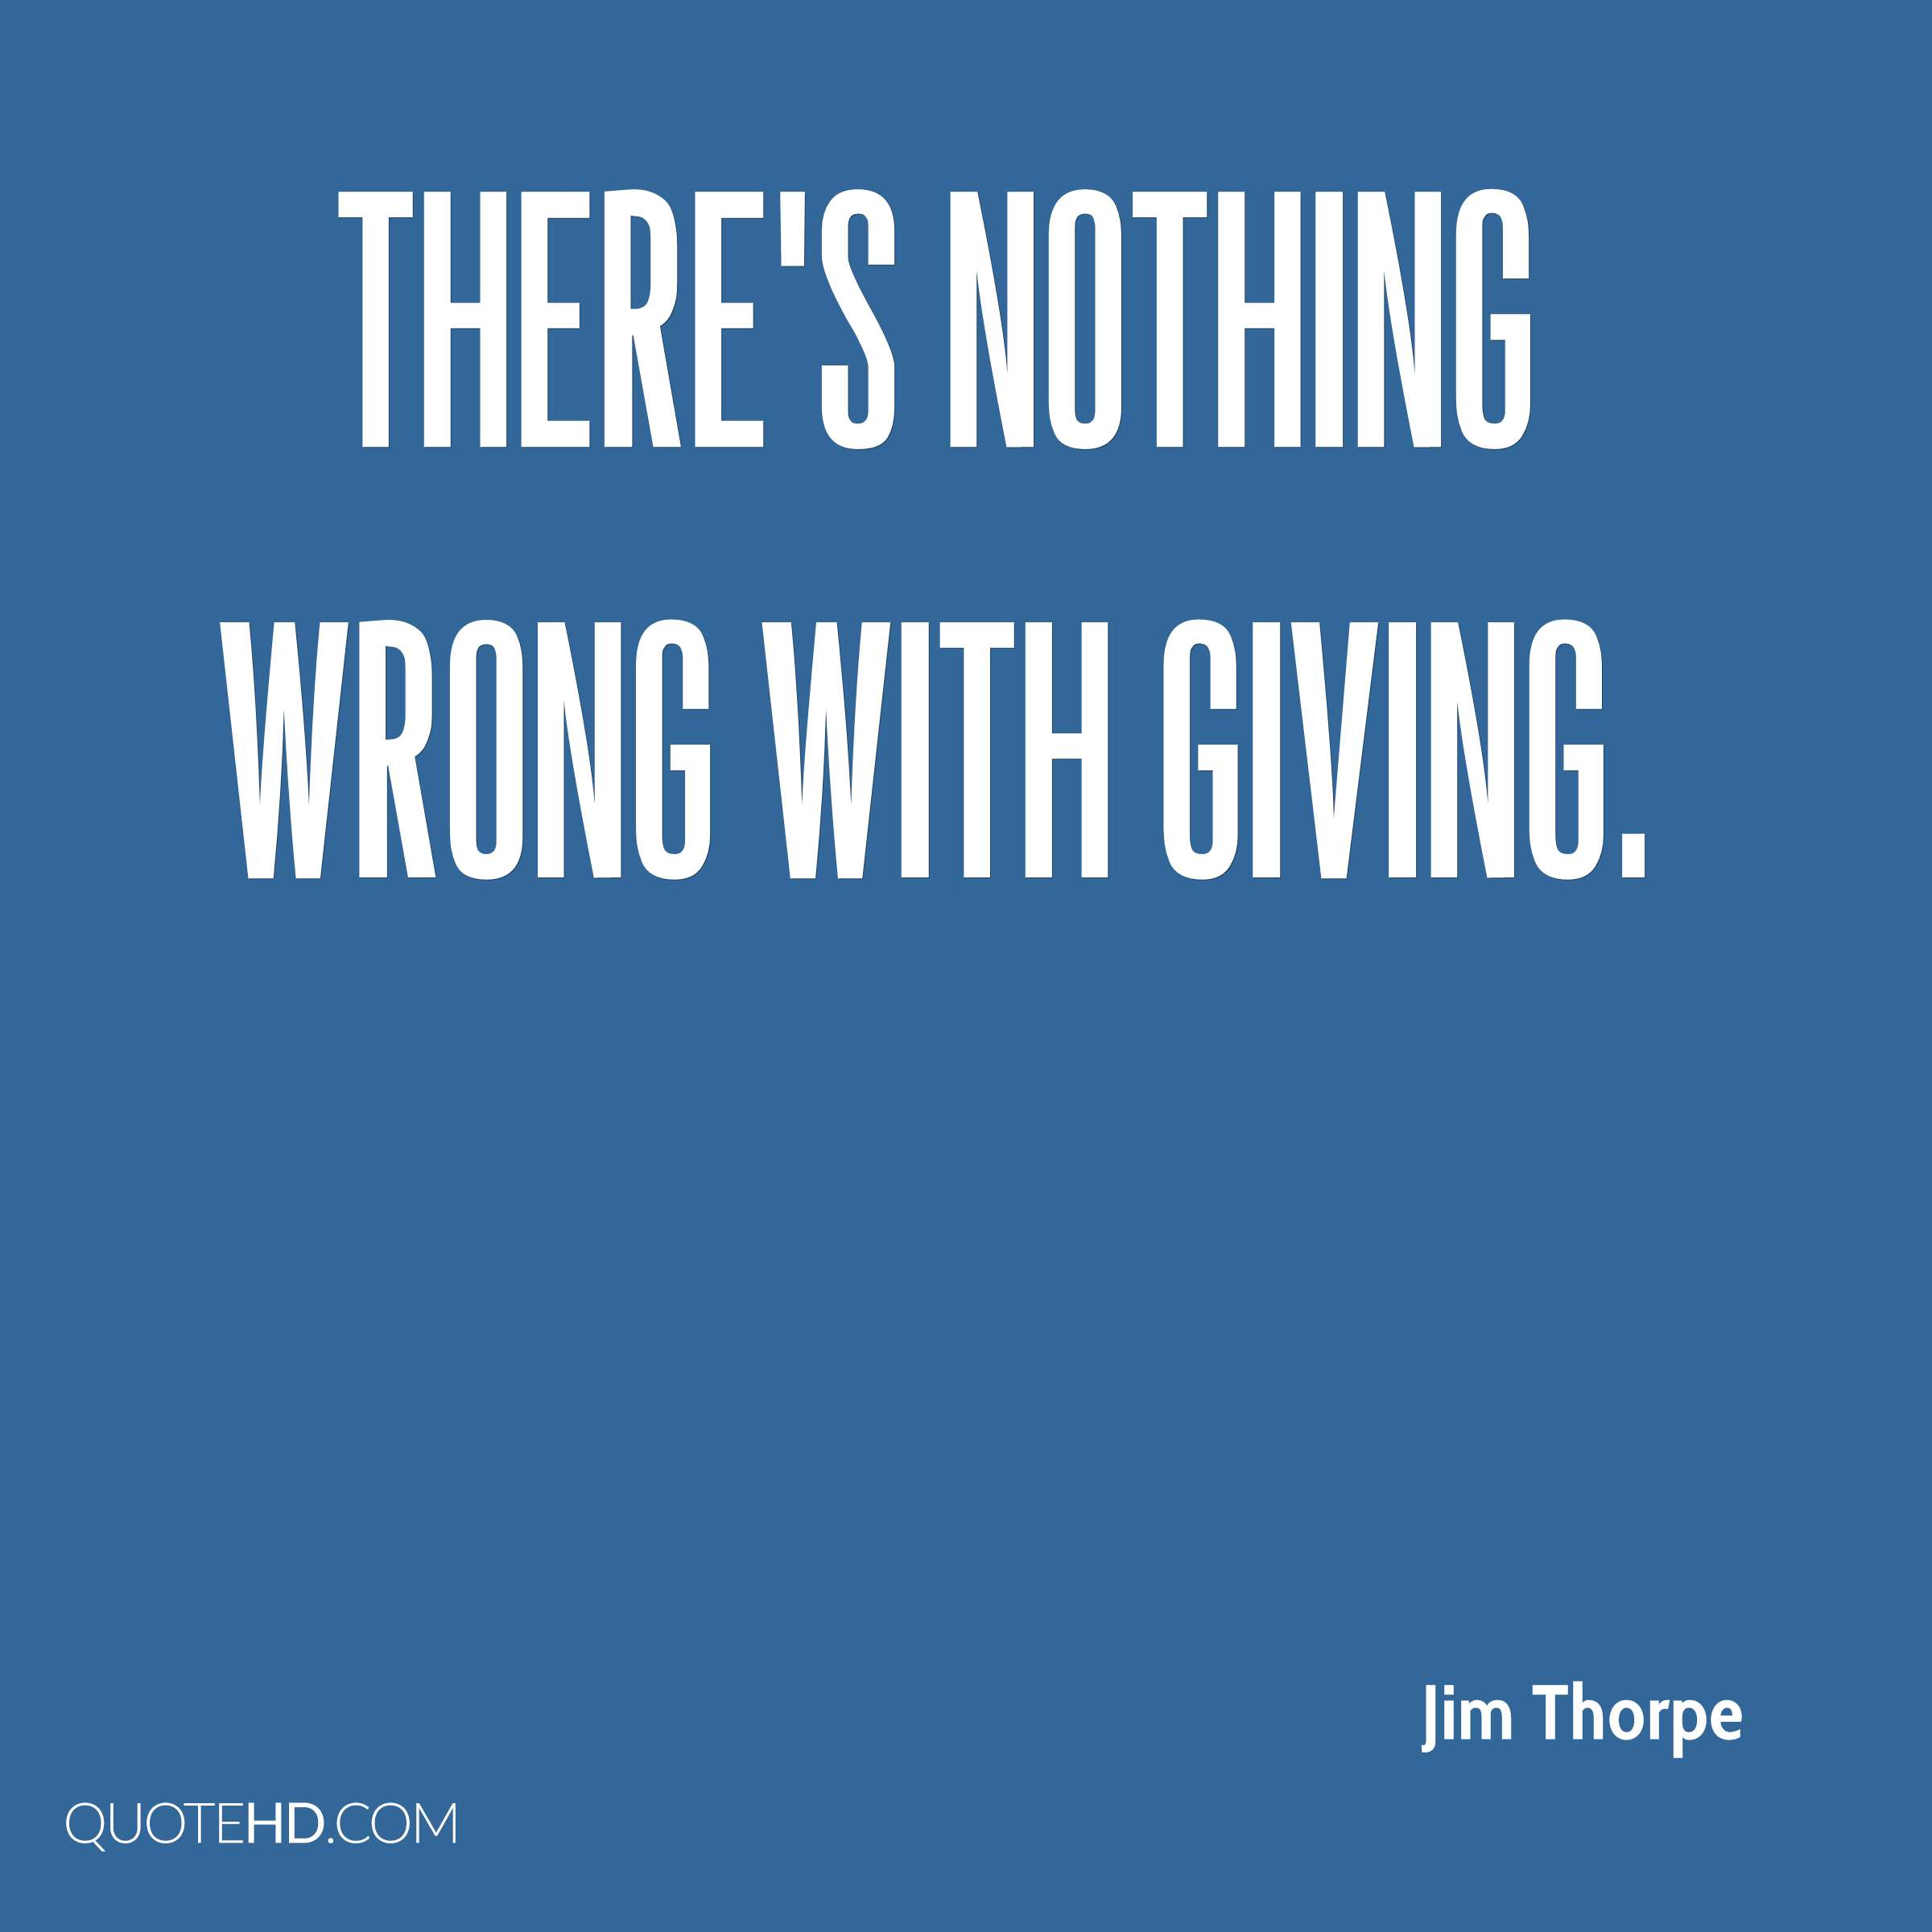 There's nothing wrong with giving.